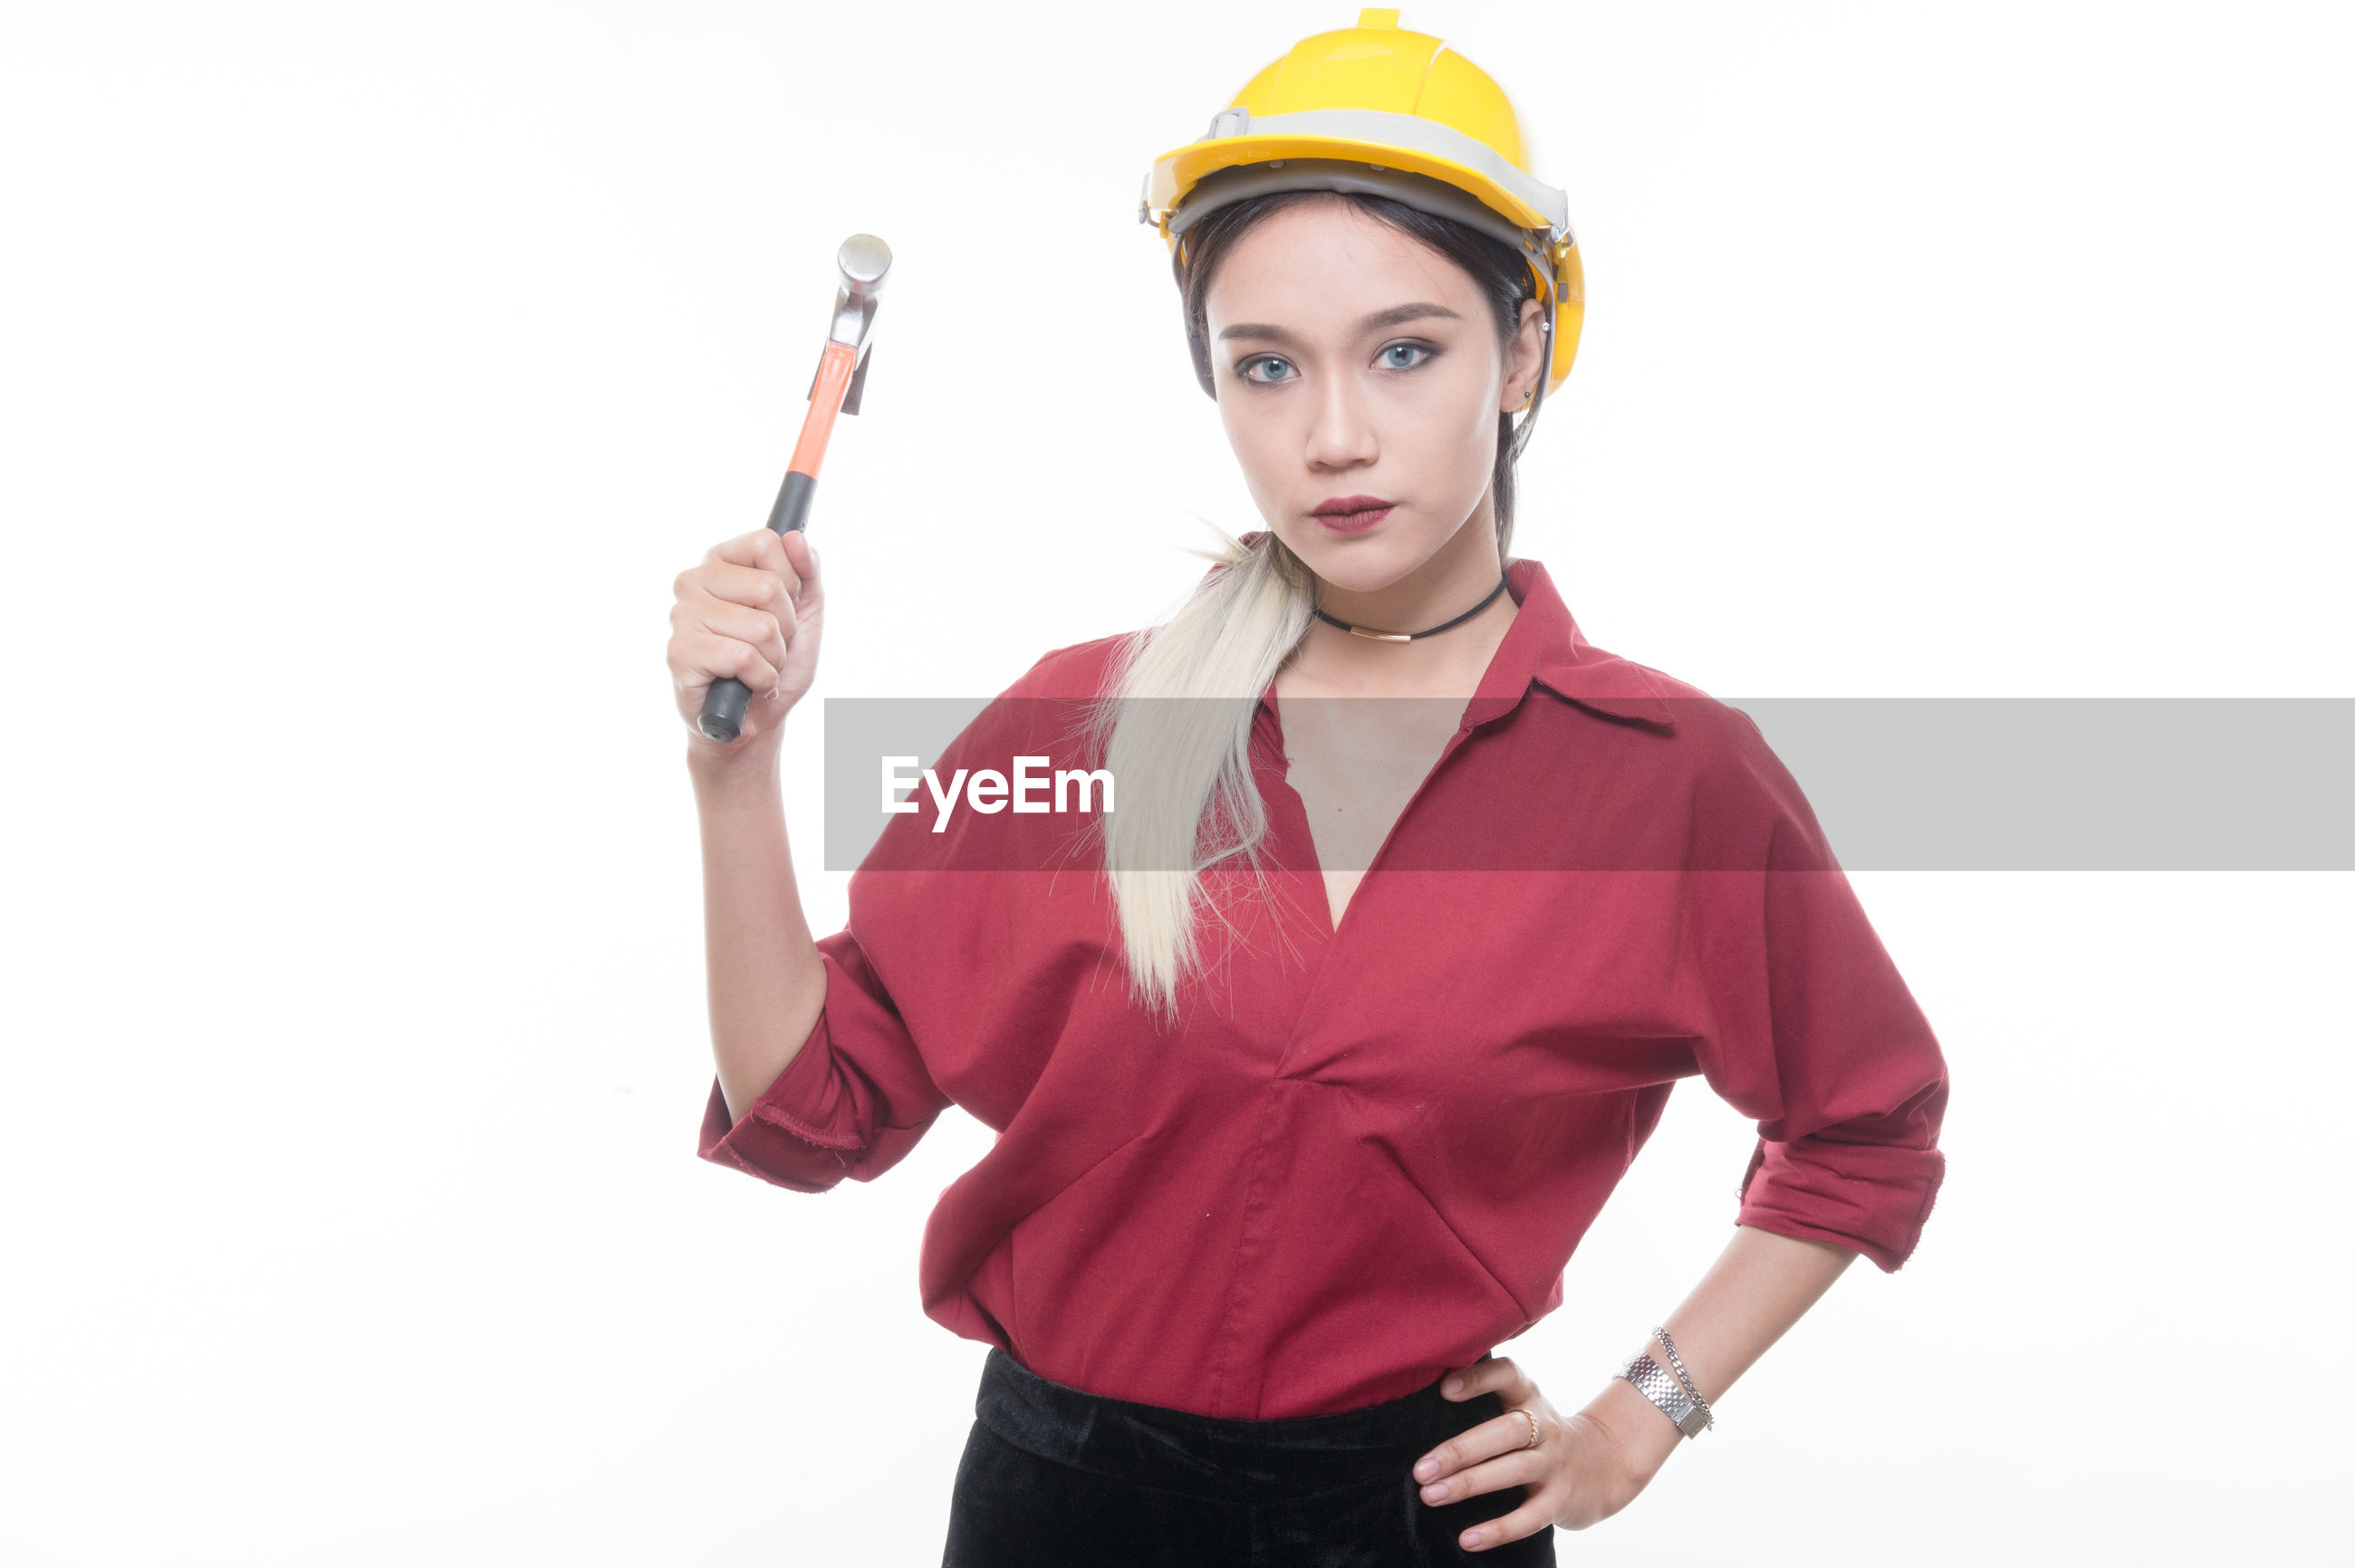 Confident young architect wearing yellow hardhat holding hammer while standing against white background